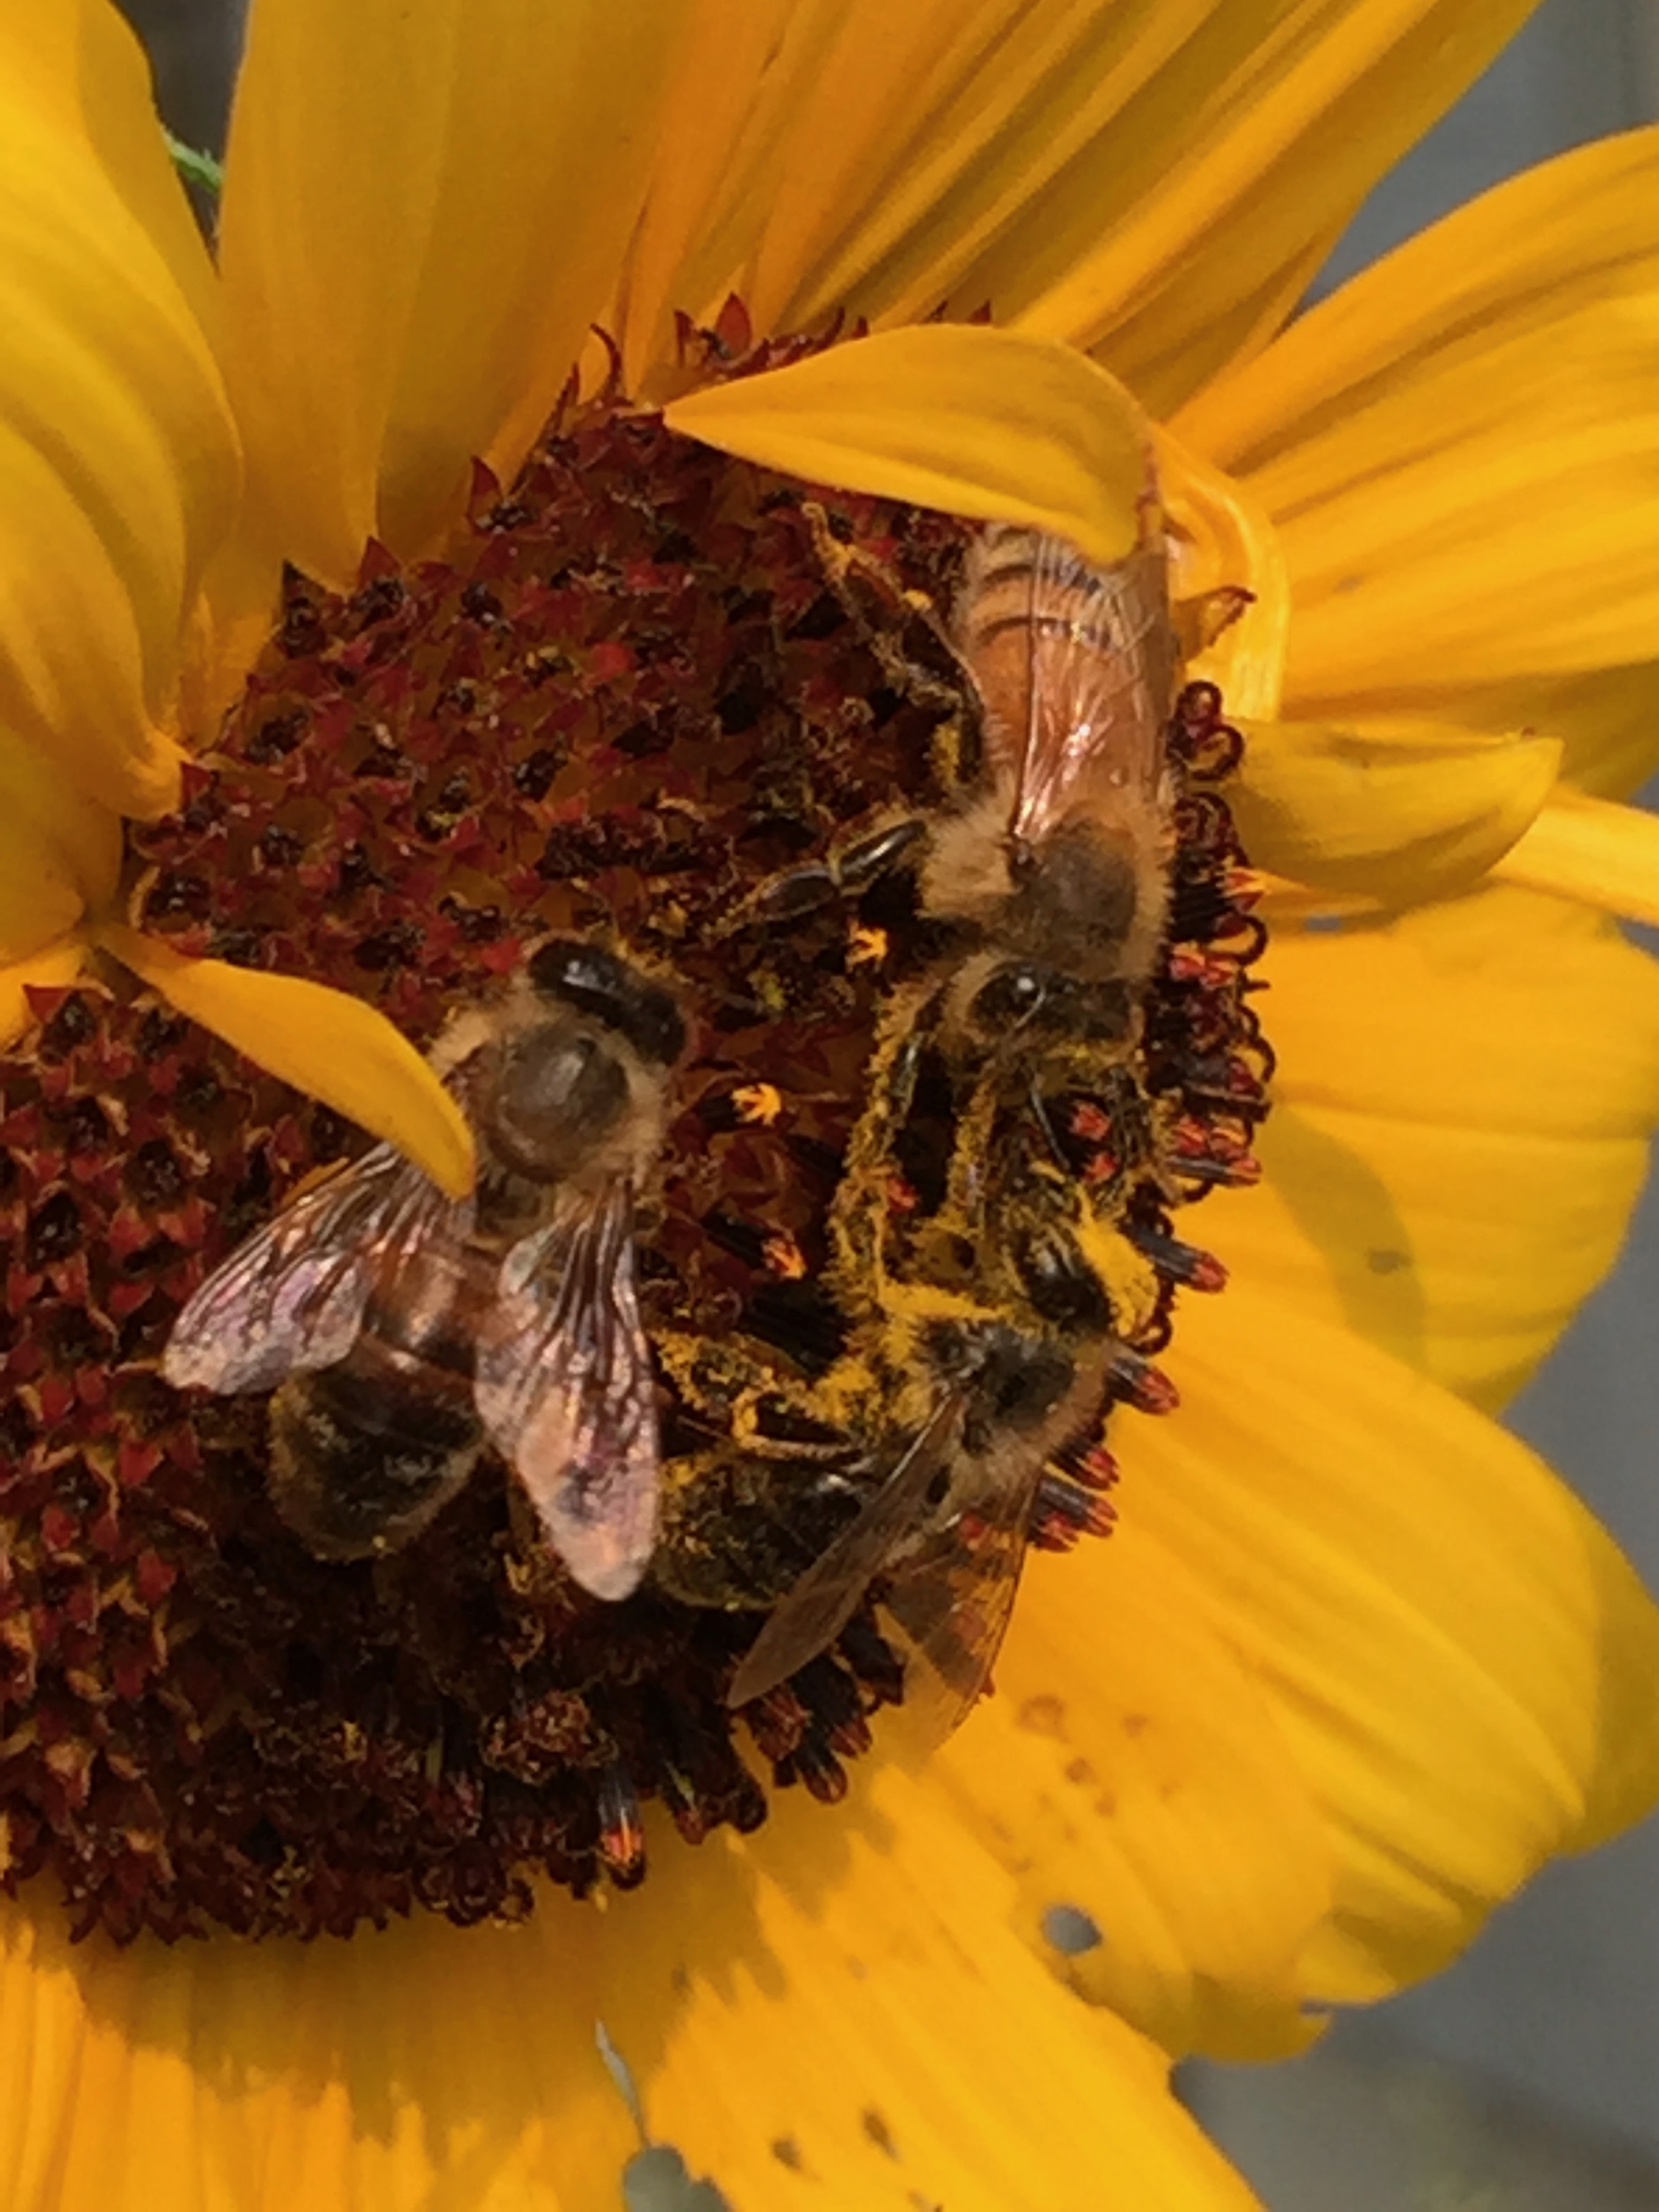 I grew, from seed, hundreds of sunflowers this year, and gave away most. I planted about 50 in the garden, though, and we have enjoyed them so much. Some are knee-high, some are higher than our fruit trees; some are red, some brown, some yellow; all the centers have been different colors, from dark to light; the bees have loved them all. Is there any more cheerful flower?